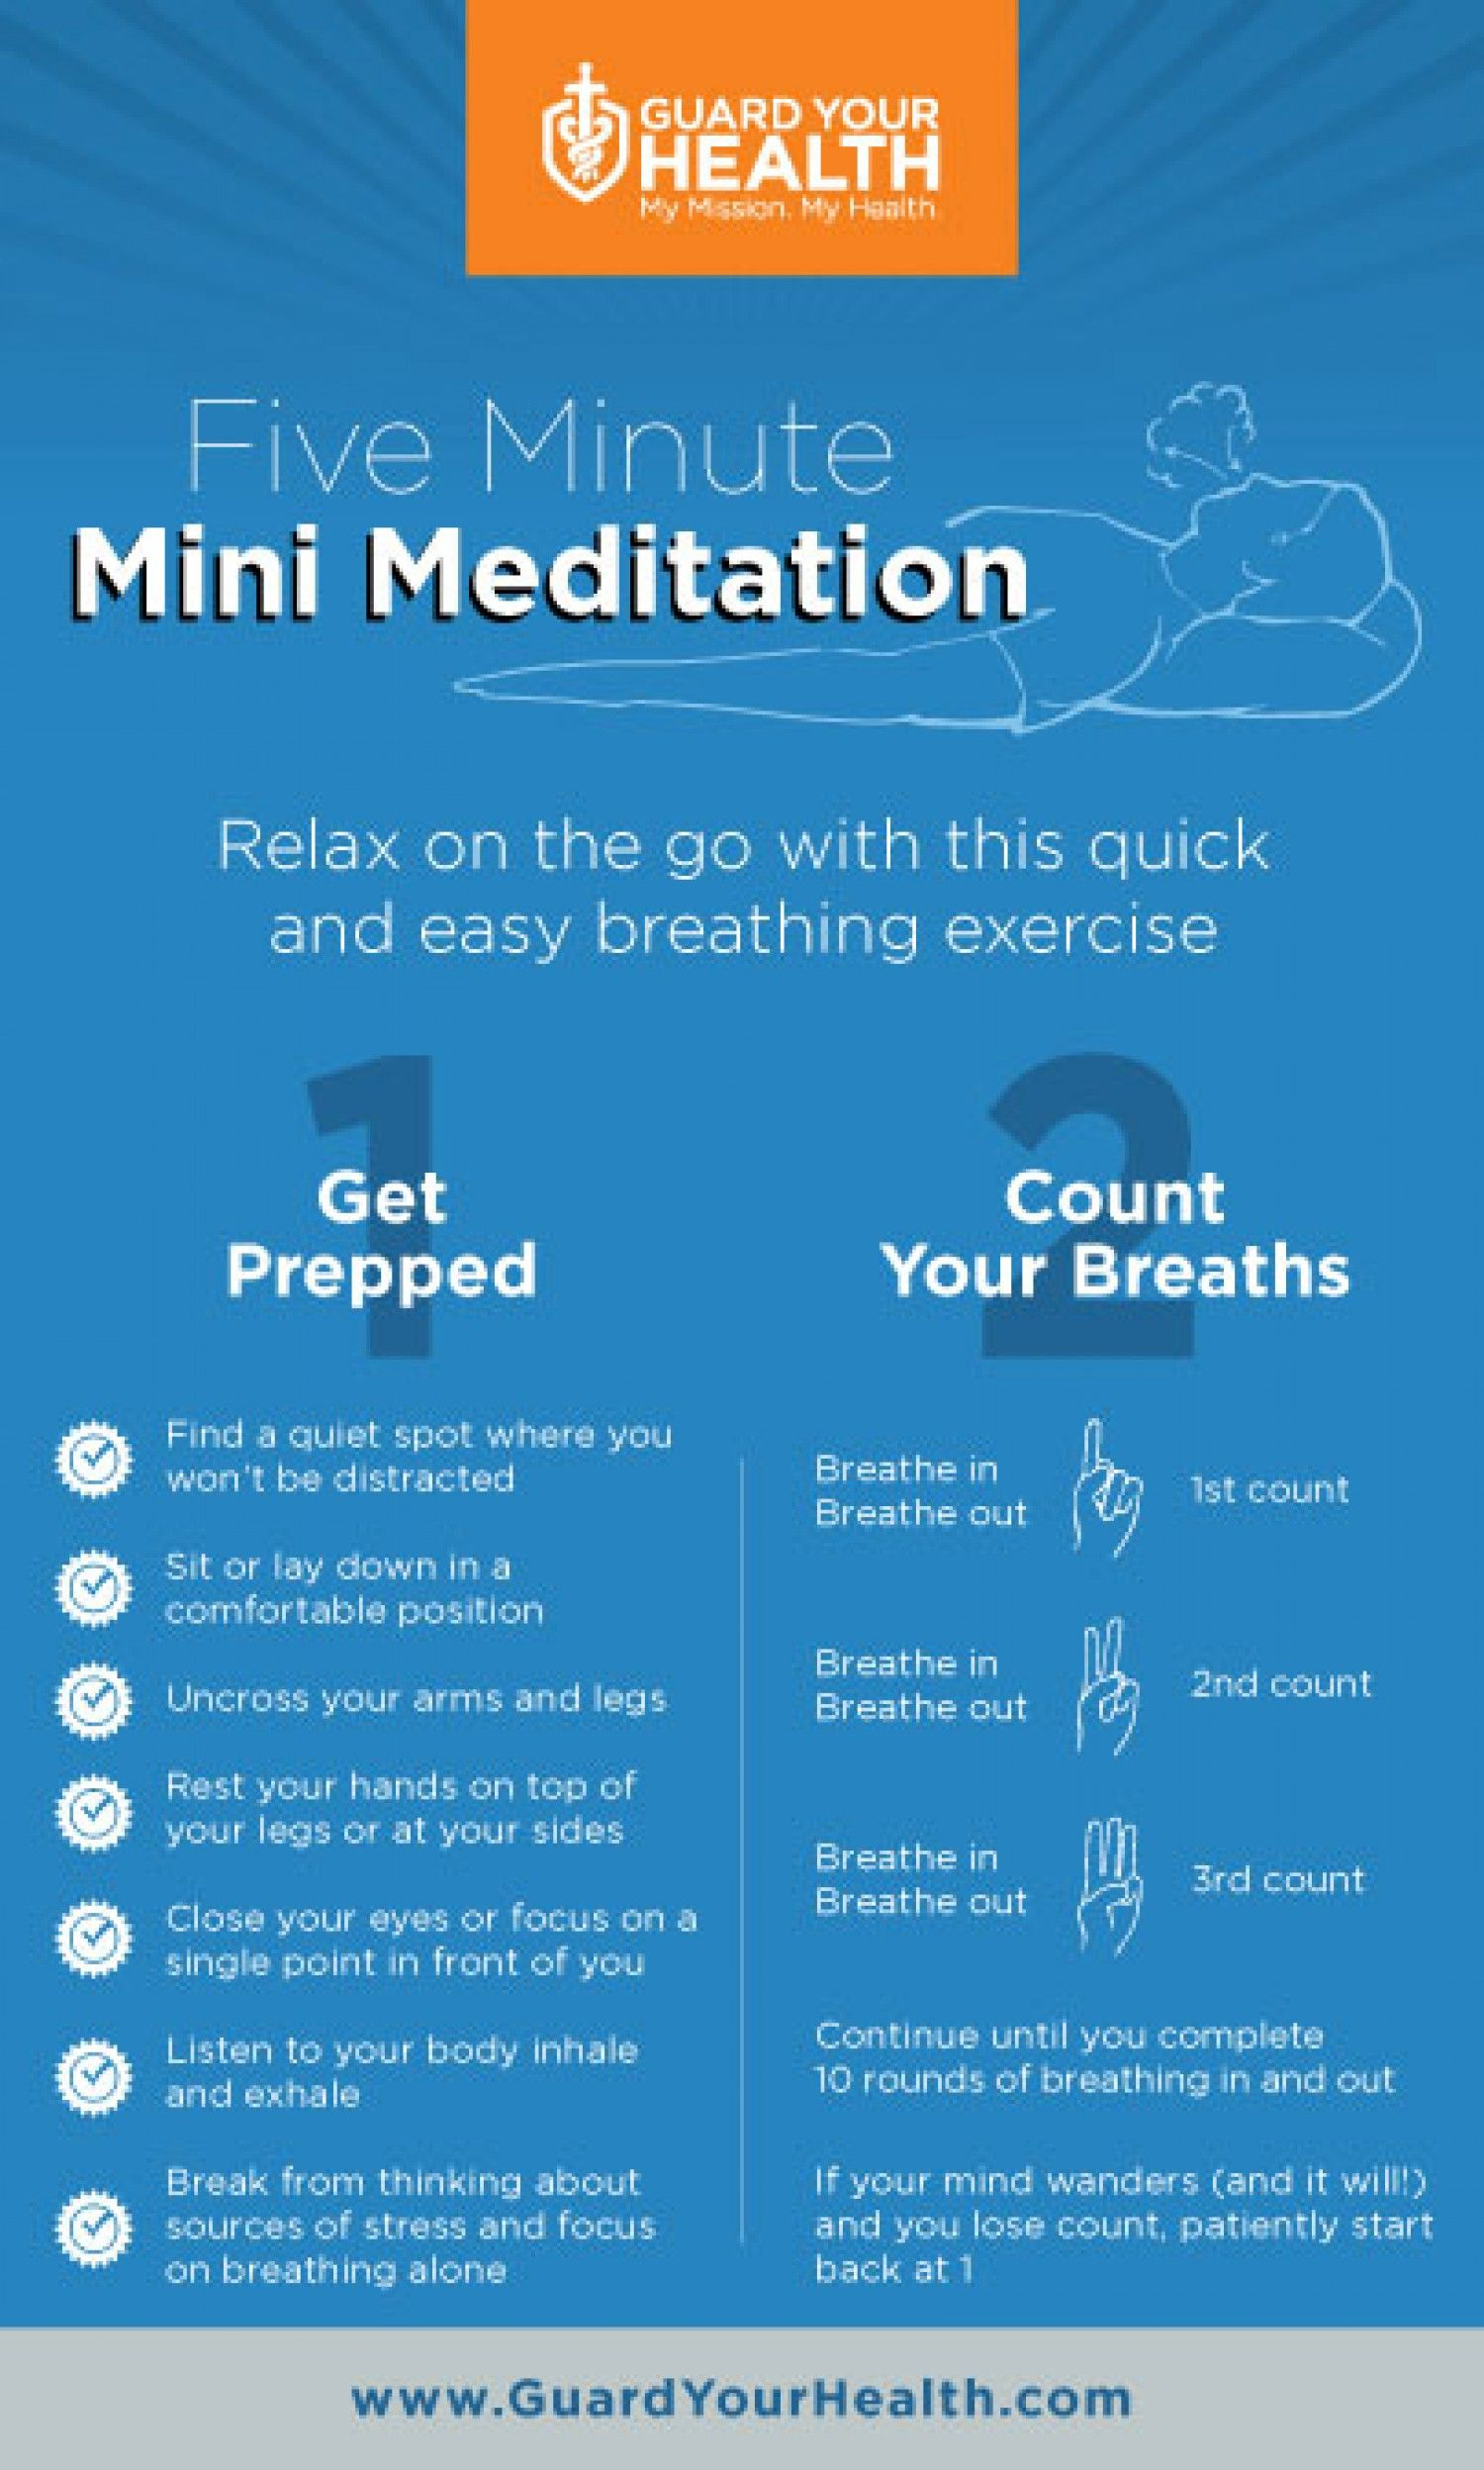 Relax On The Go With This Quick And Easy Breathing